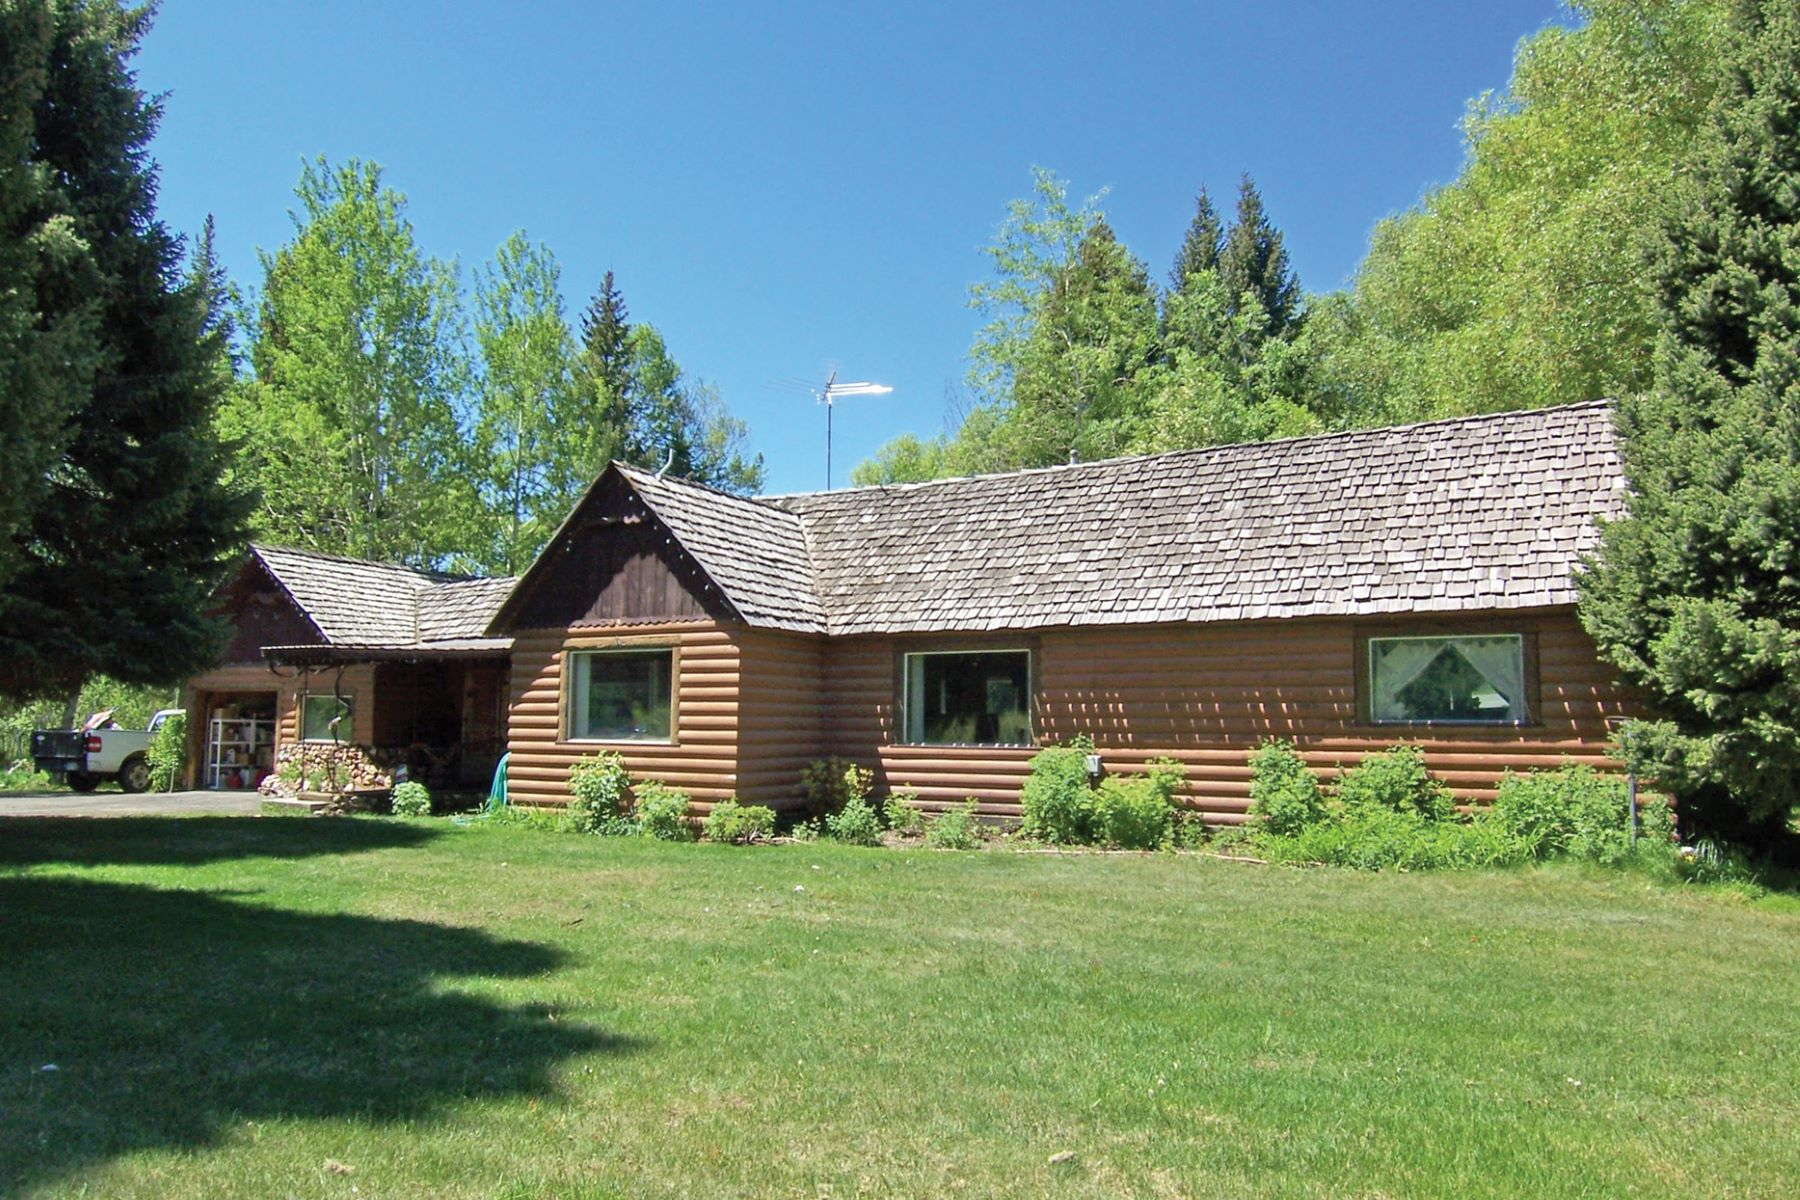 Single Family Home for Sale at 2 Homes on 11 Acres on Driggs Main St. 552 South Hwy 33 (Main Street) Driggs, Idaho 83422